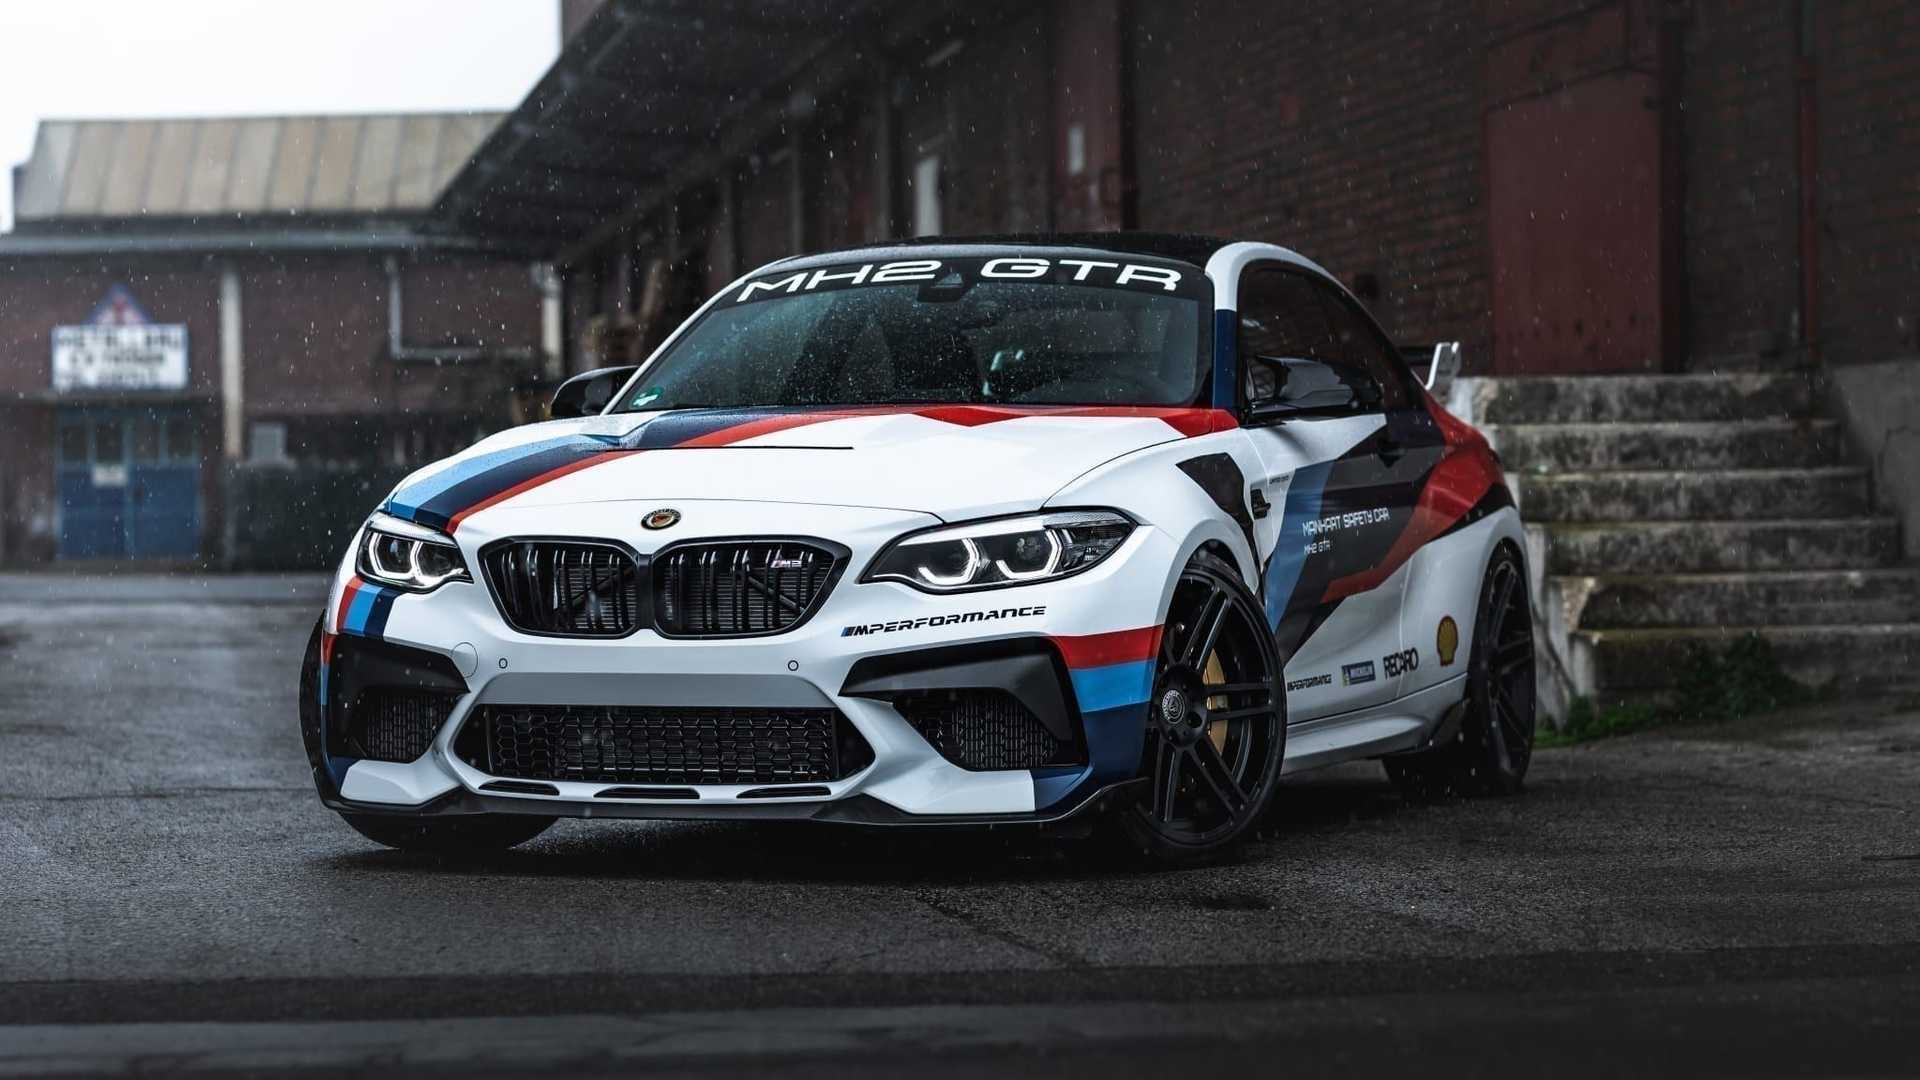 Moments ago, we reported about Top Gear host Chris Harris and his lack of interest in the BMW M2 CS for daily driving. While some of us will relate to the notion of having too much power in a car, others will scoff at it and go looking for options. It is for these individuals that Manhart prepared its latest upgrade kit.